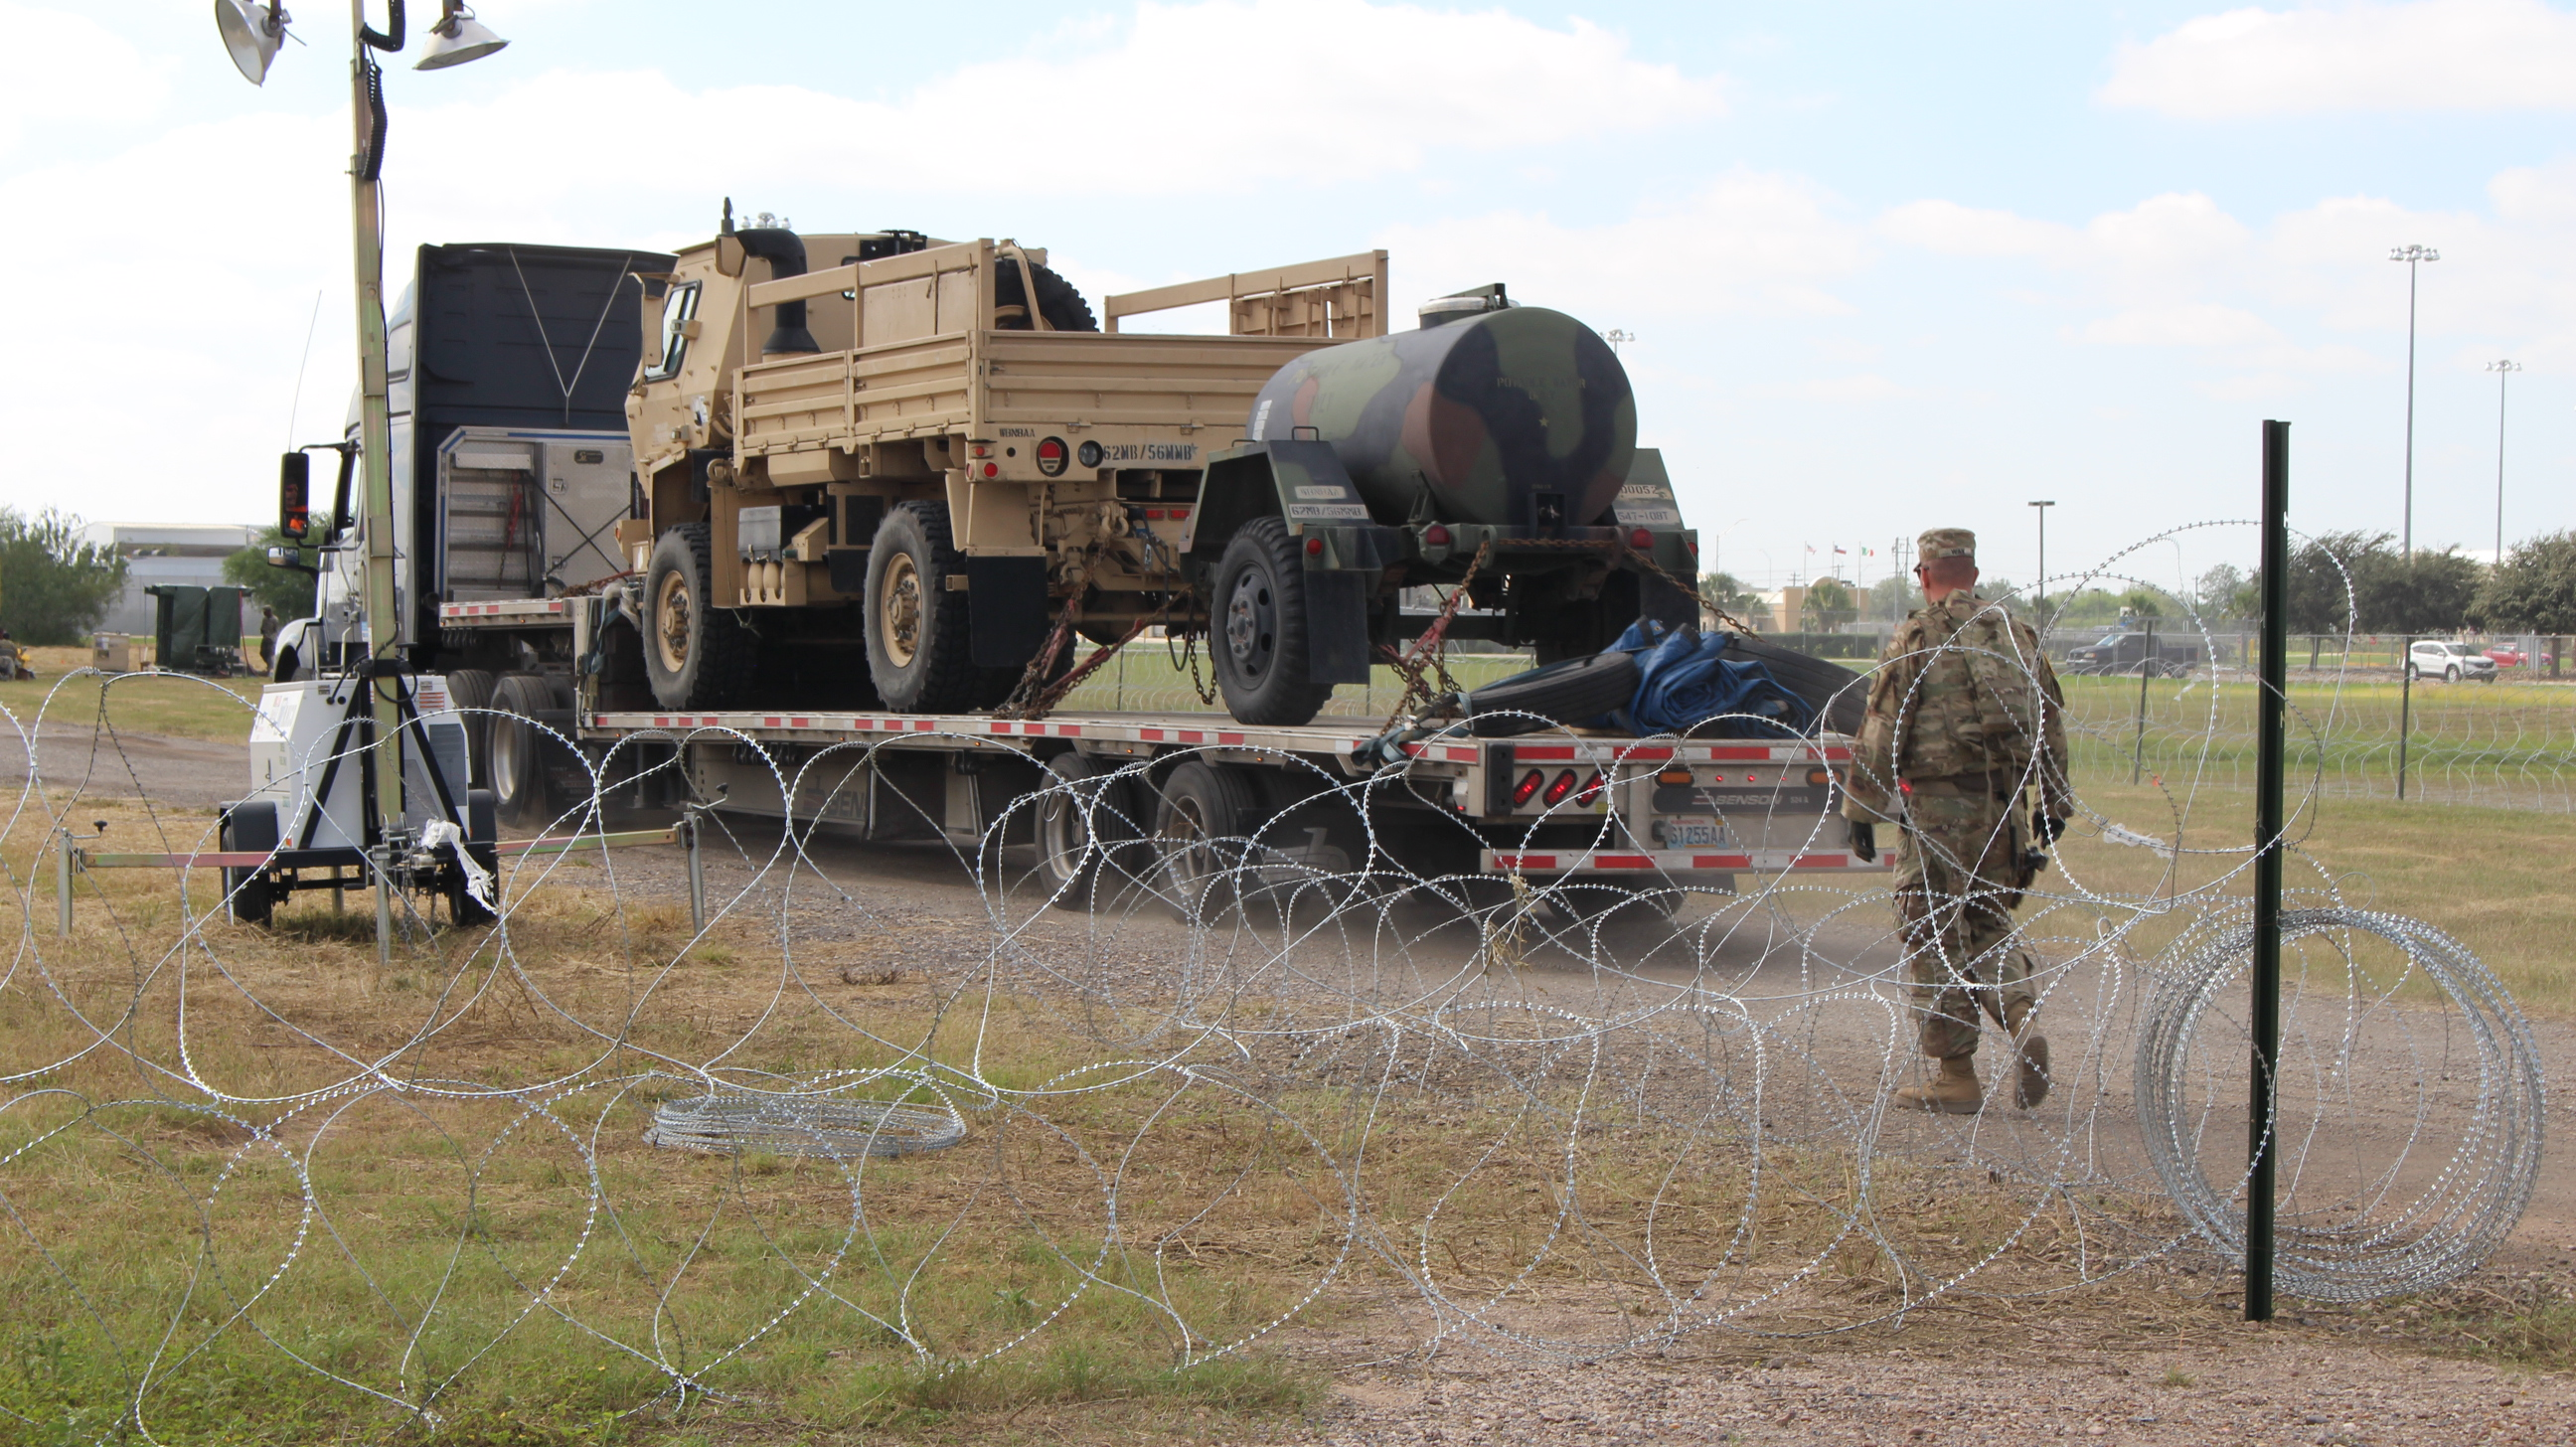 Caption: A military vehicle enters an encampment in Donna, Texas, just inside the U.S. border with Mexico., Credit:  Carson Frame / American Homefront